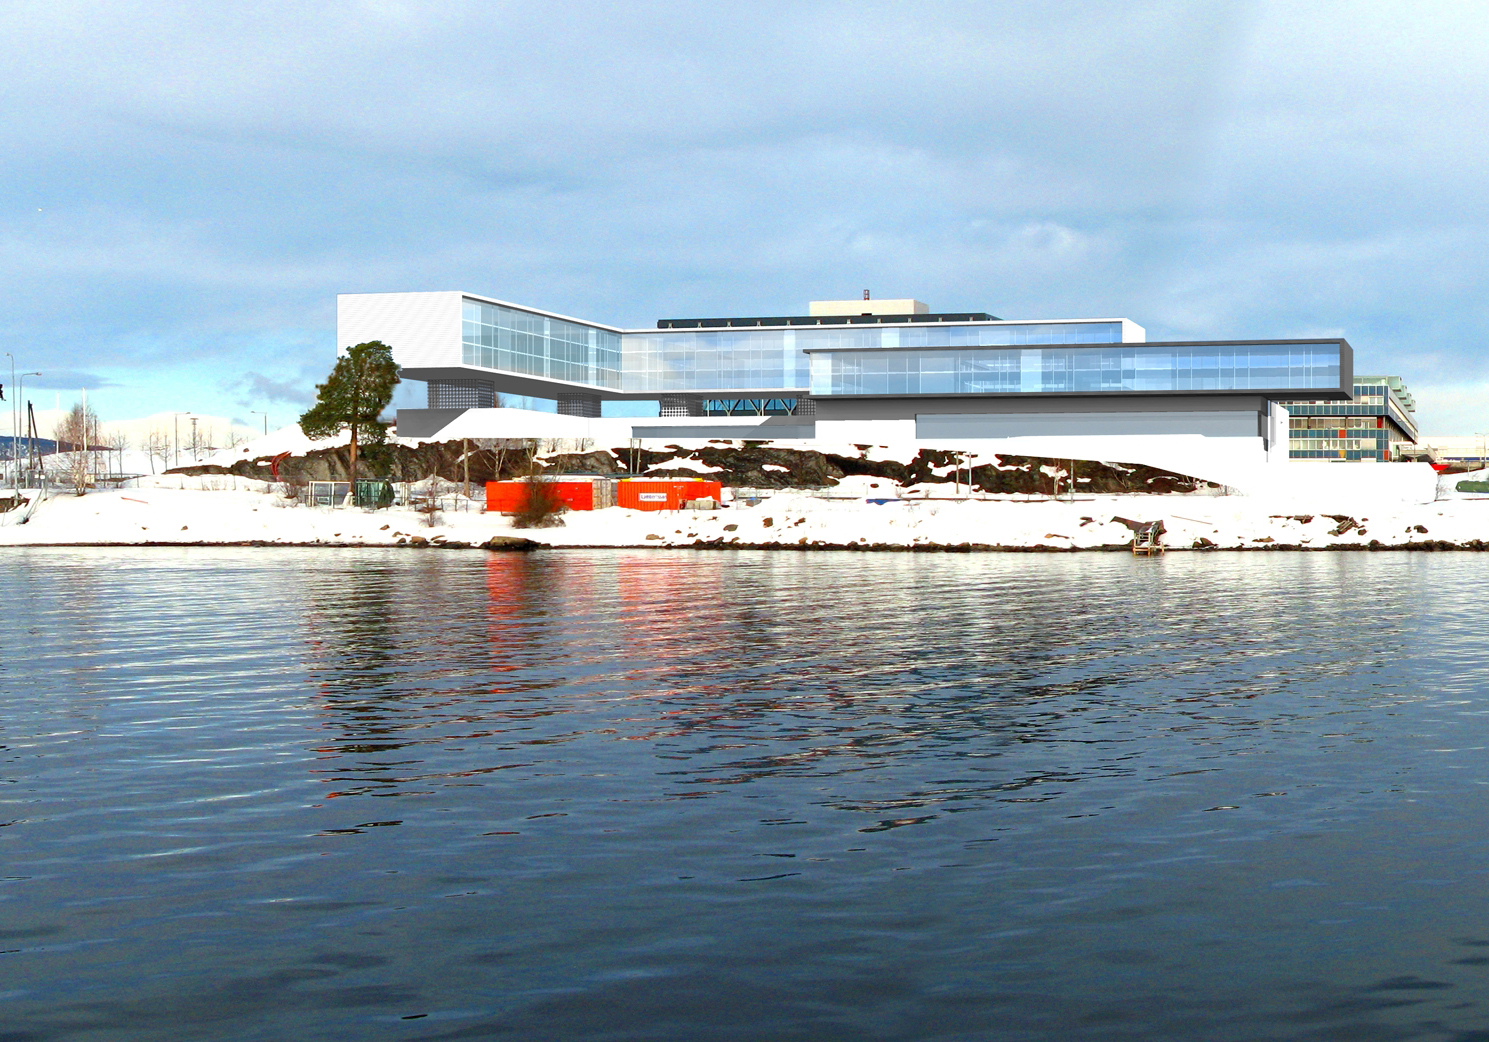 Scandic signs up for another hotel in Oslo